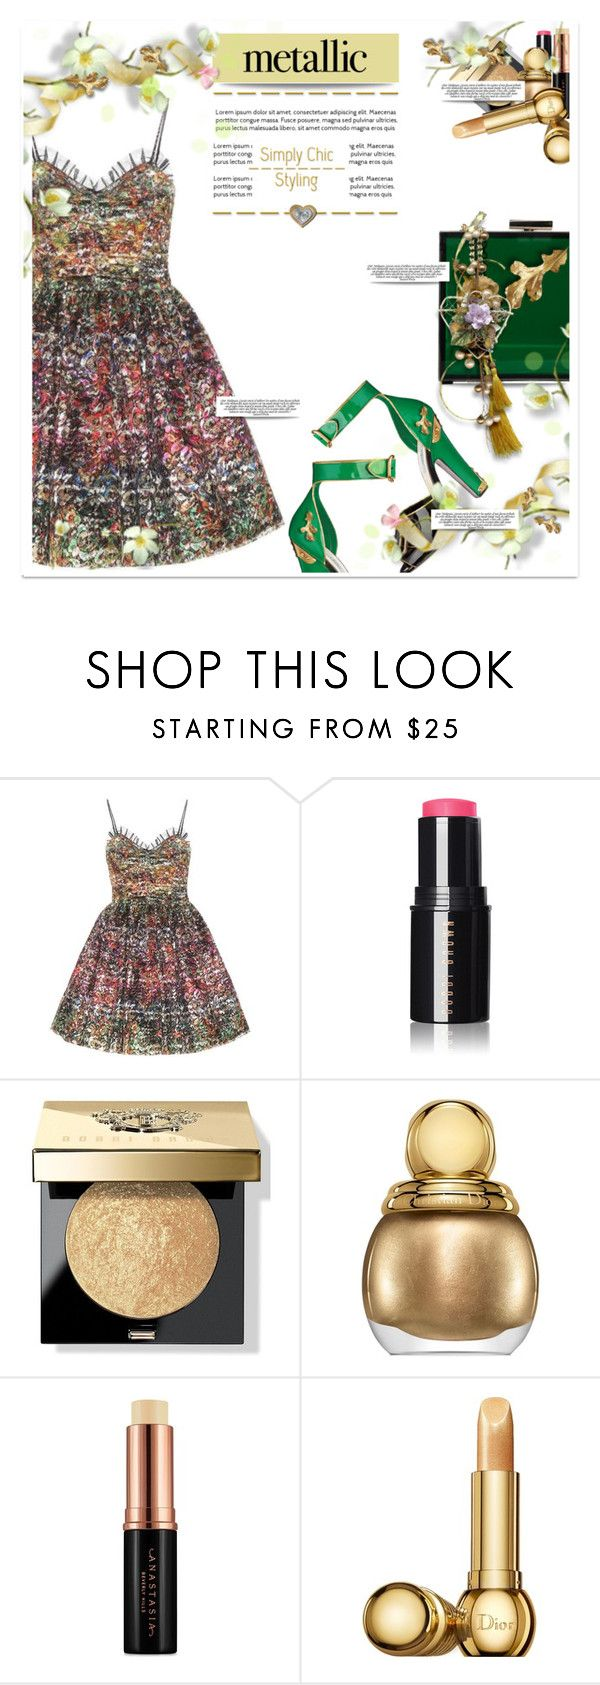 """🎀 #542  #metallicdress"" by wonderful-paradisaical ❤ liked on Polyvore featuring Yves Saint Laurent, Bobbi Brown Cosmetics, Christian Dior, Anastasia Beverly Hills, Oui, Odile!, trending, polyvorecommunity, polyvorecontest, metallicdress and PolyvoreMostStylish"